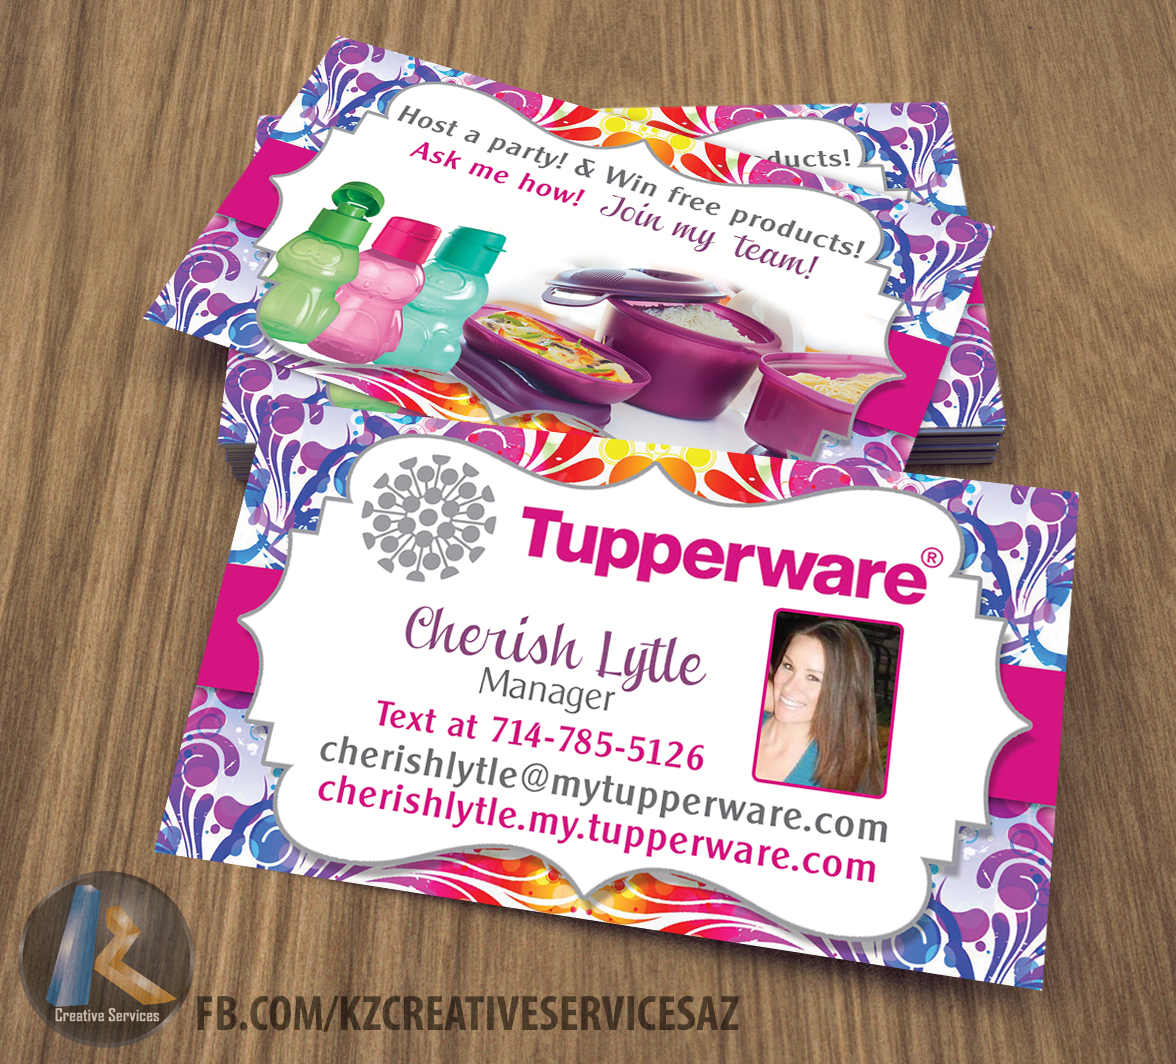 Tupperware business cards style 1 kz creative services online tupperware business cards style 1 colourmoves